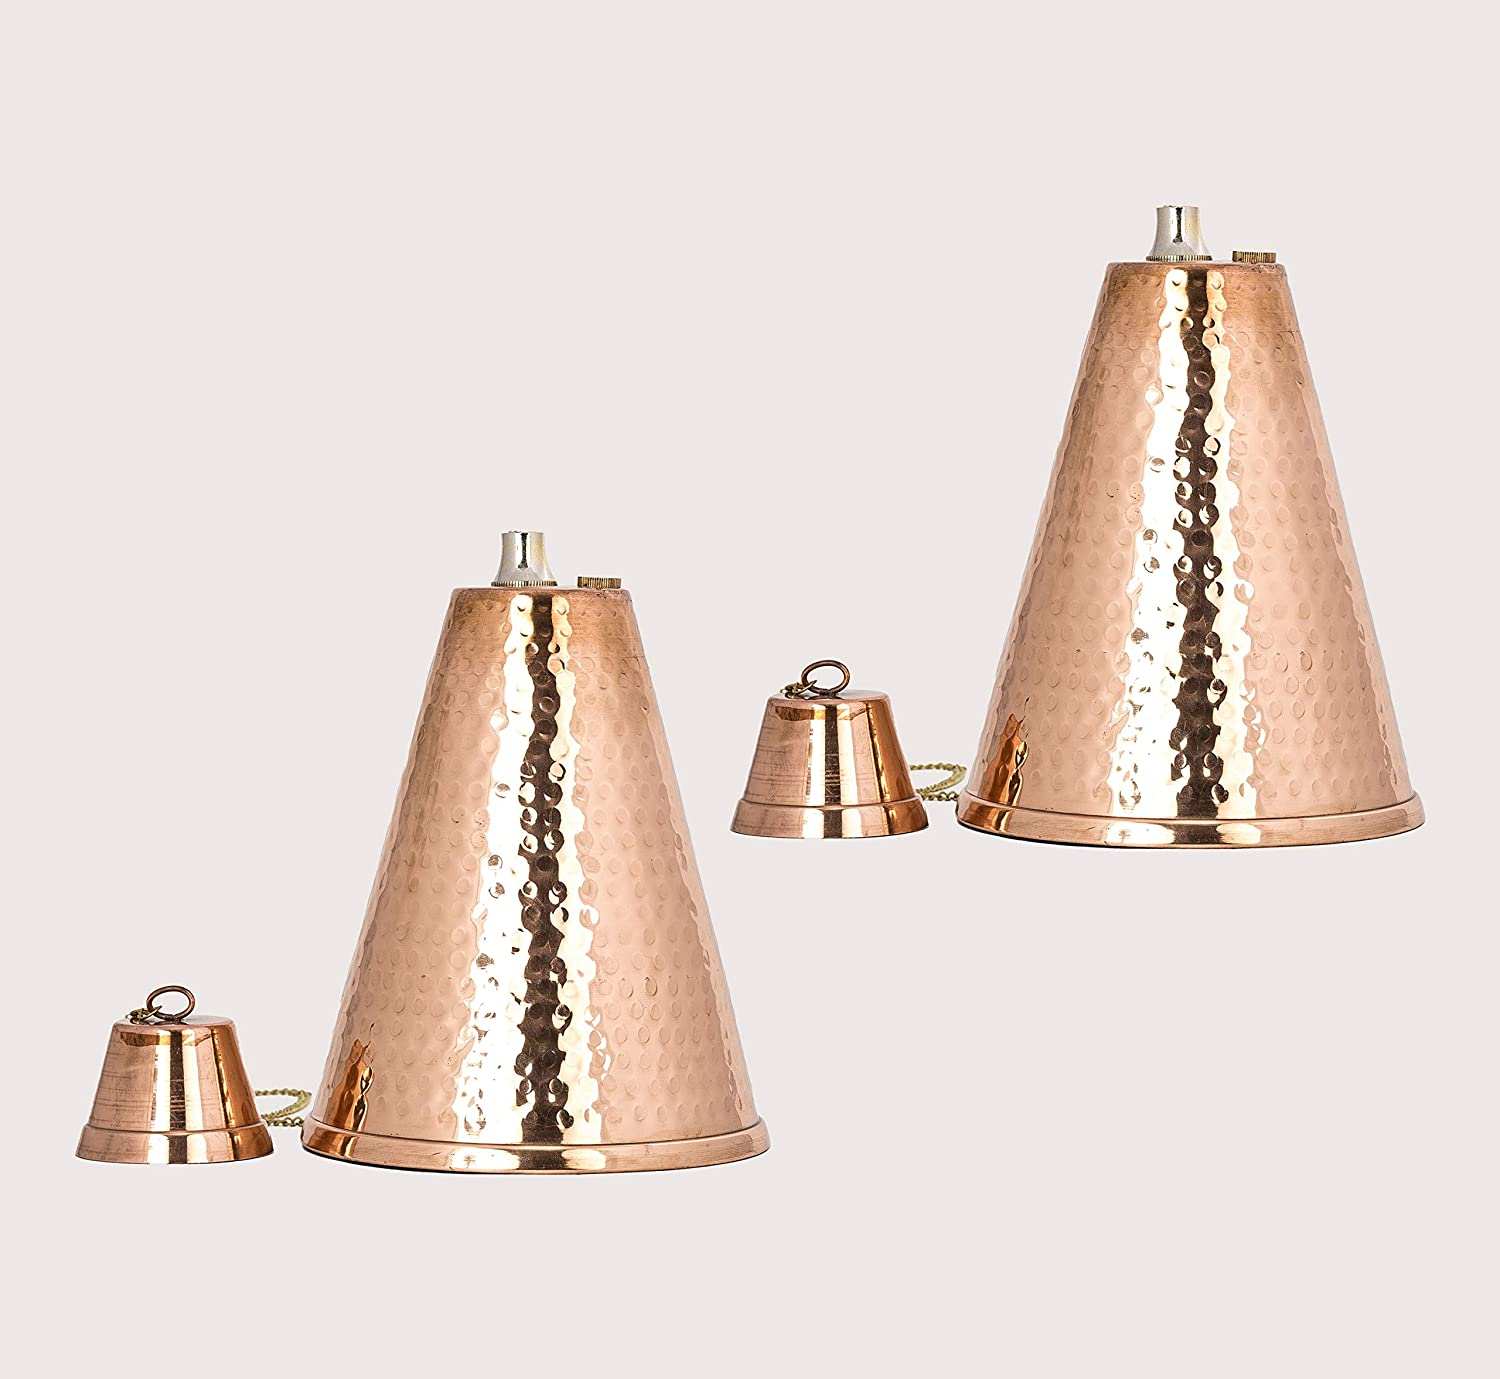 Max 48% OFF Hawaiian Cone Tabletop Oil Max 59% OFF Torch Lamp Per is - Sophisticated